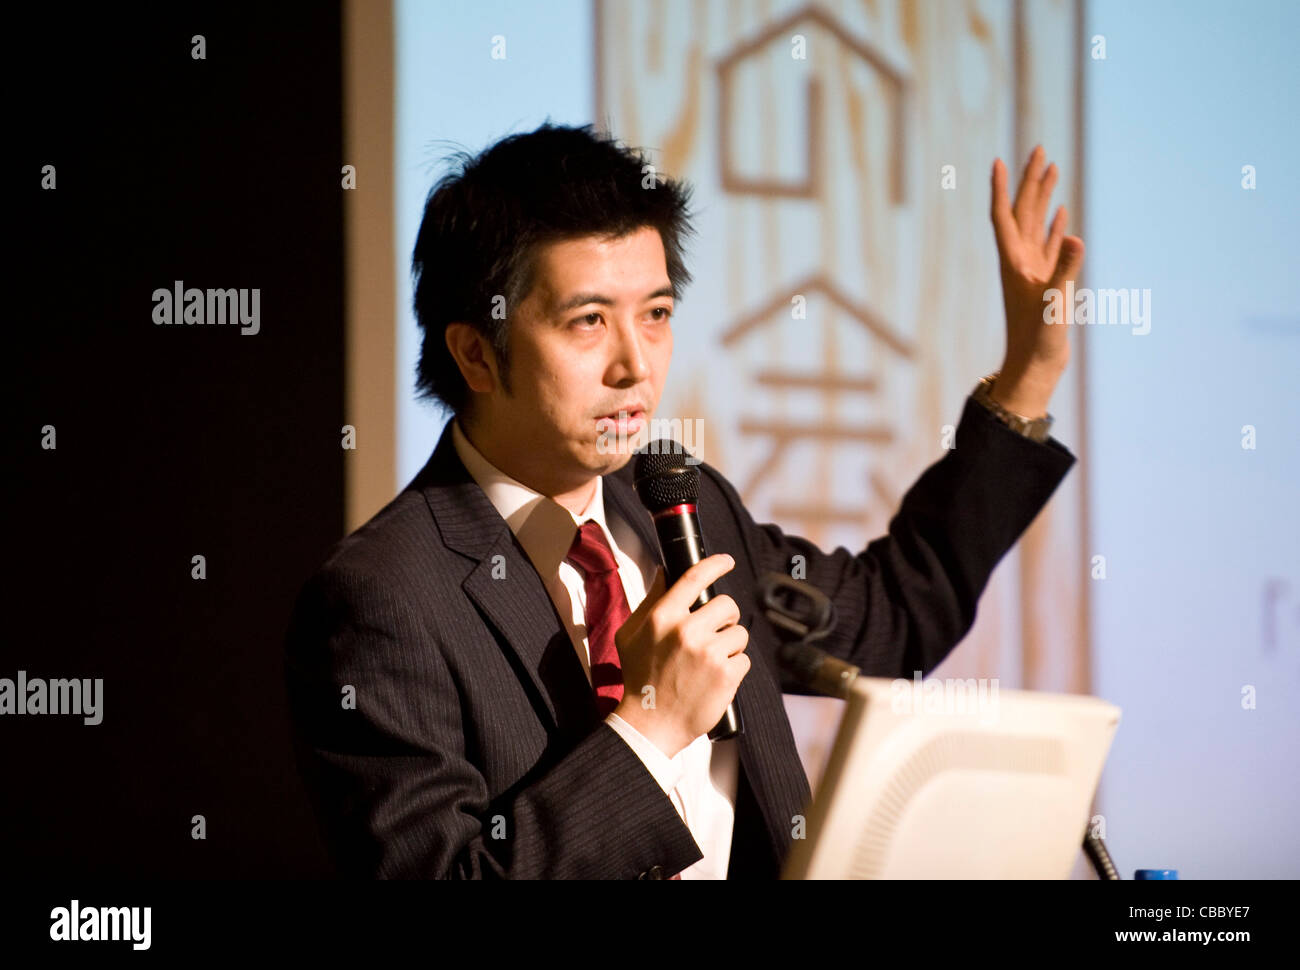 Kohei Takashima, chief director of Eat and Energize the East', speaks at the Food Summit in Sendai, Miyagi Prefecture, - Stock Image